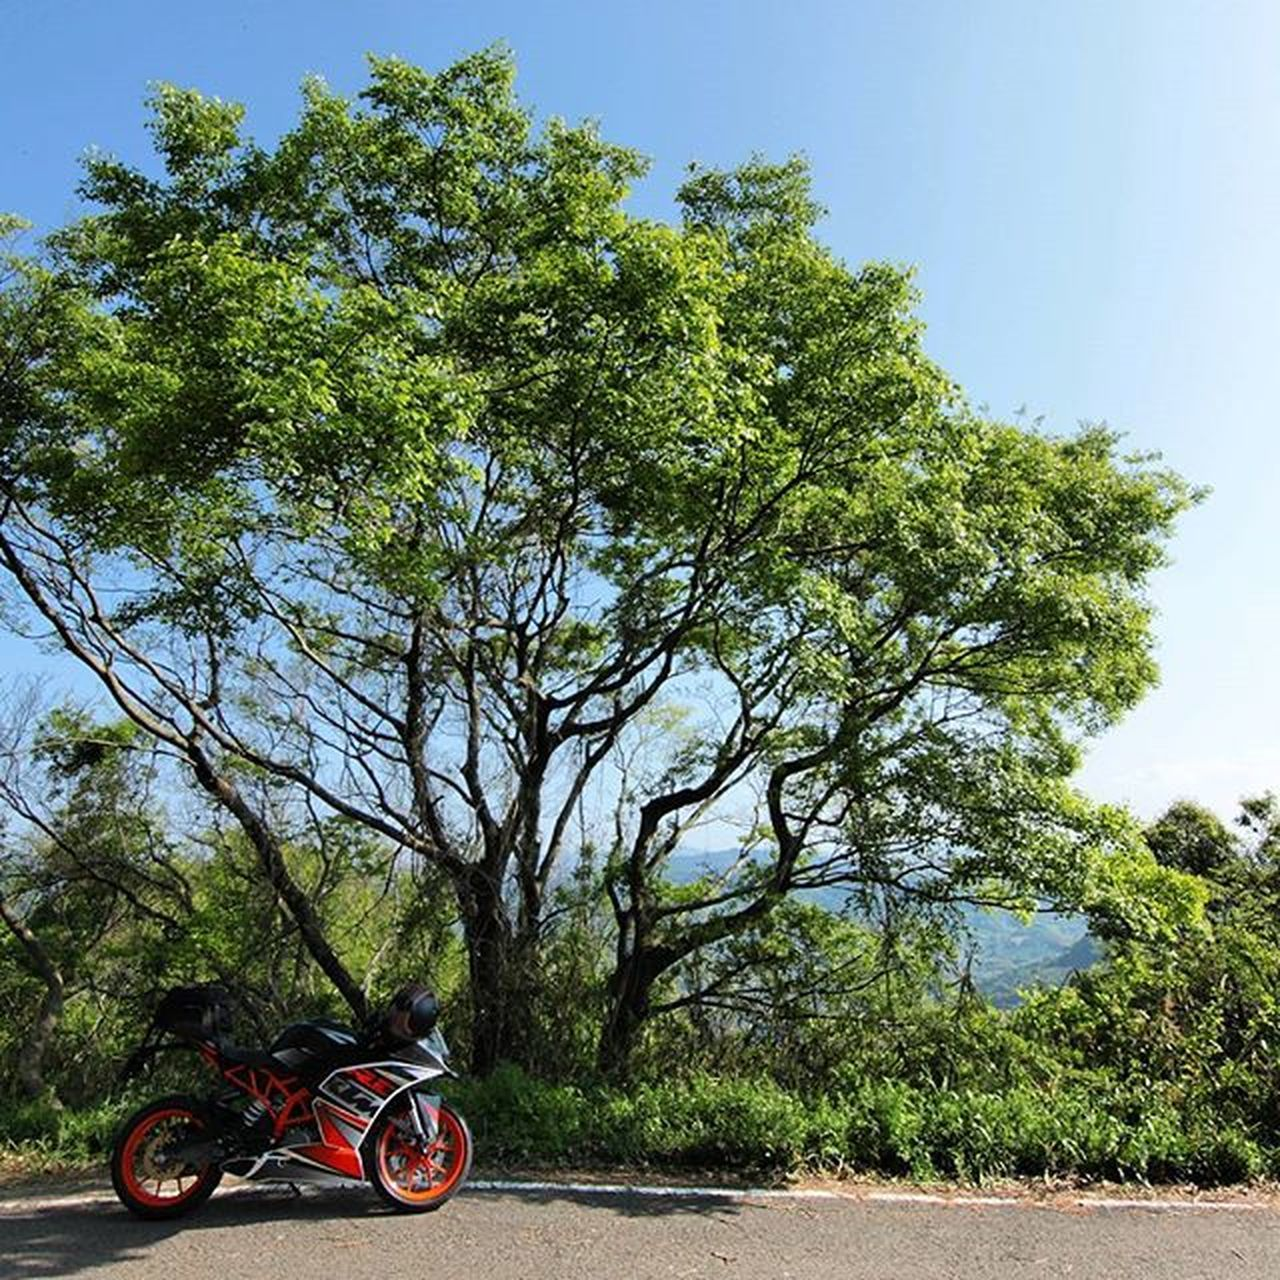 tree, transportation, day, mode of transport, road, bicycle, land vehicle, outdoors, sky, motorcycle, nature, no people, travel destinations, growth, rural scene